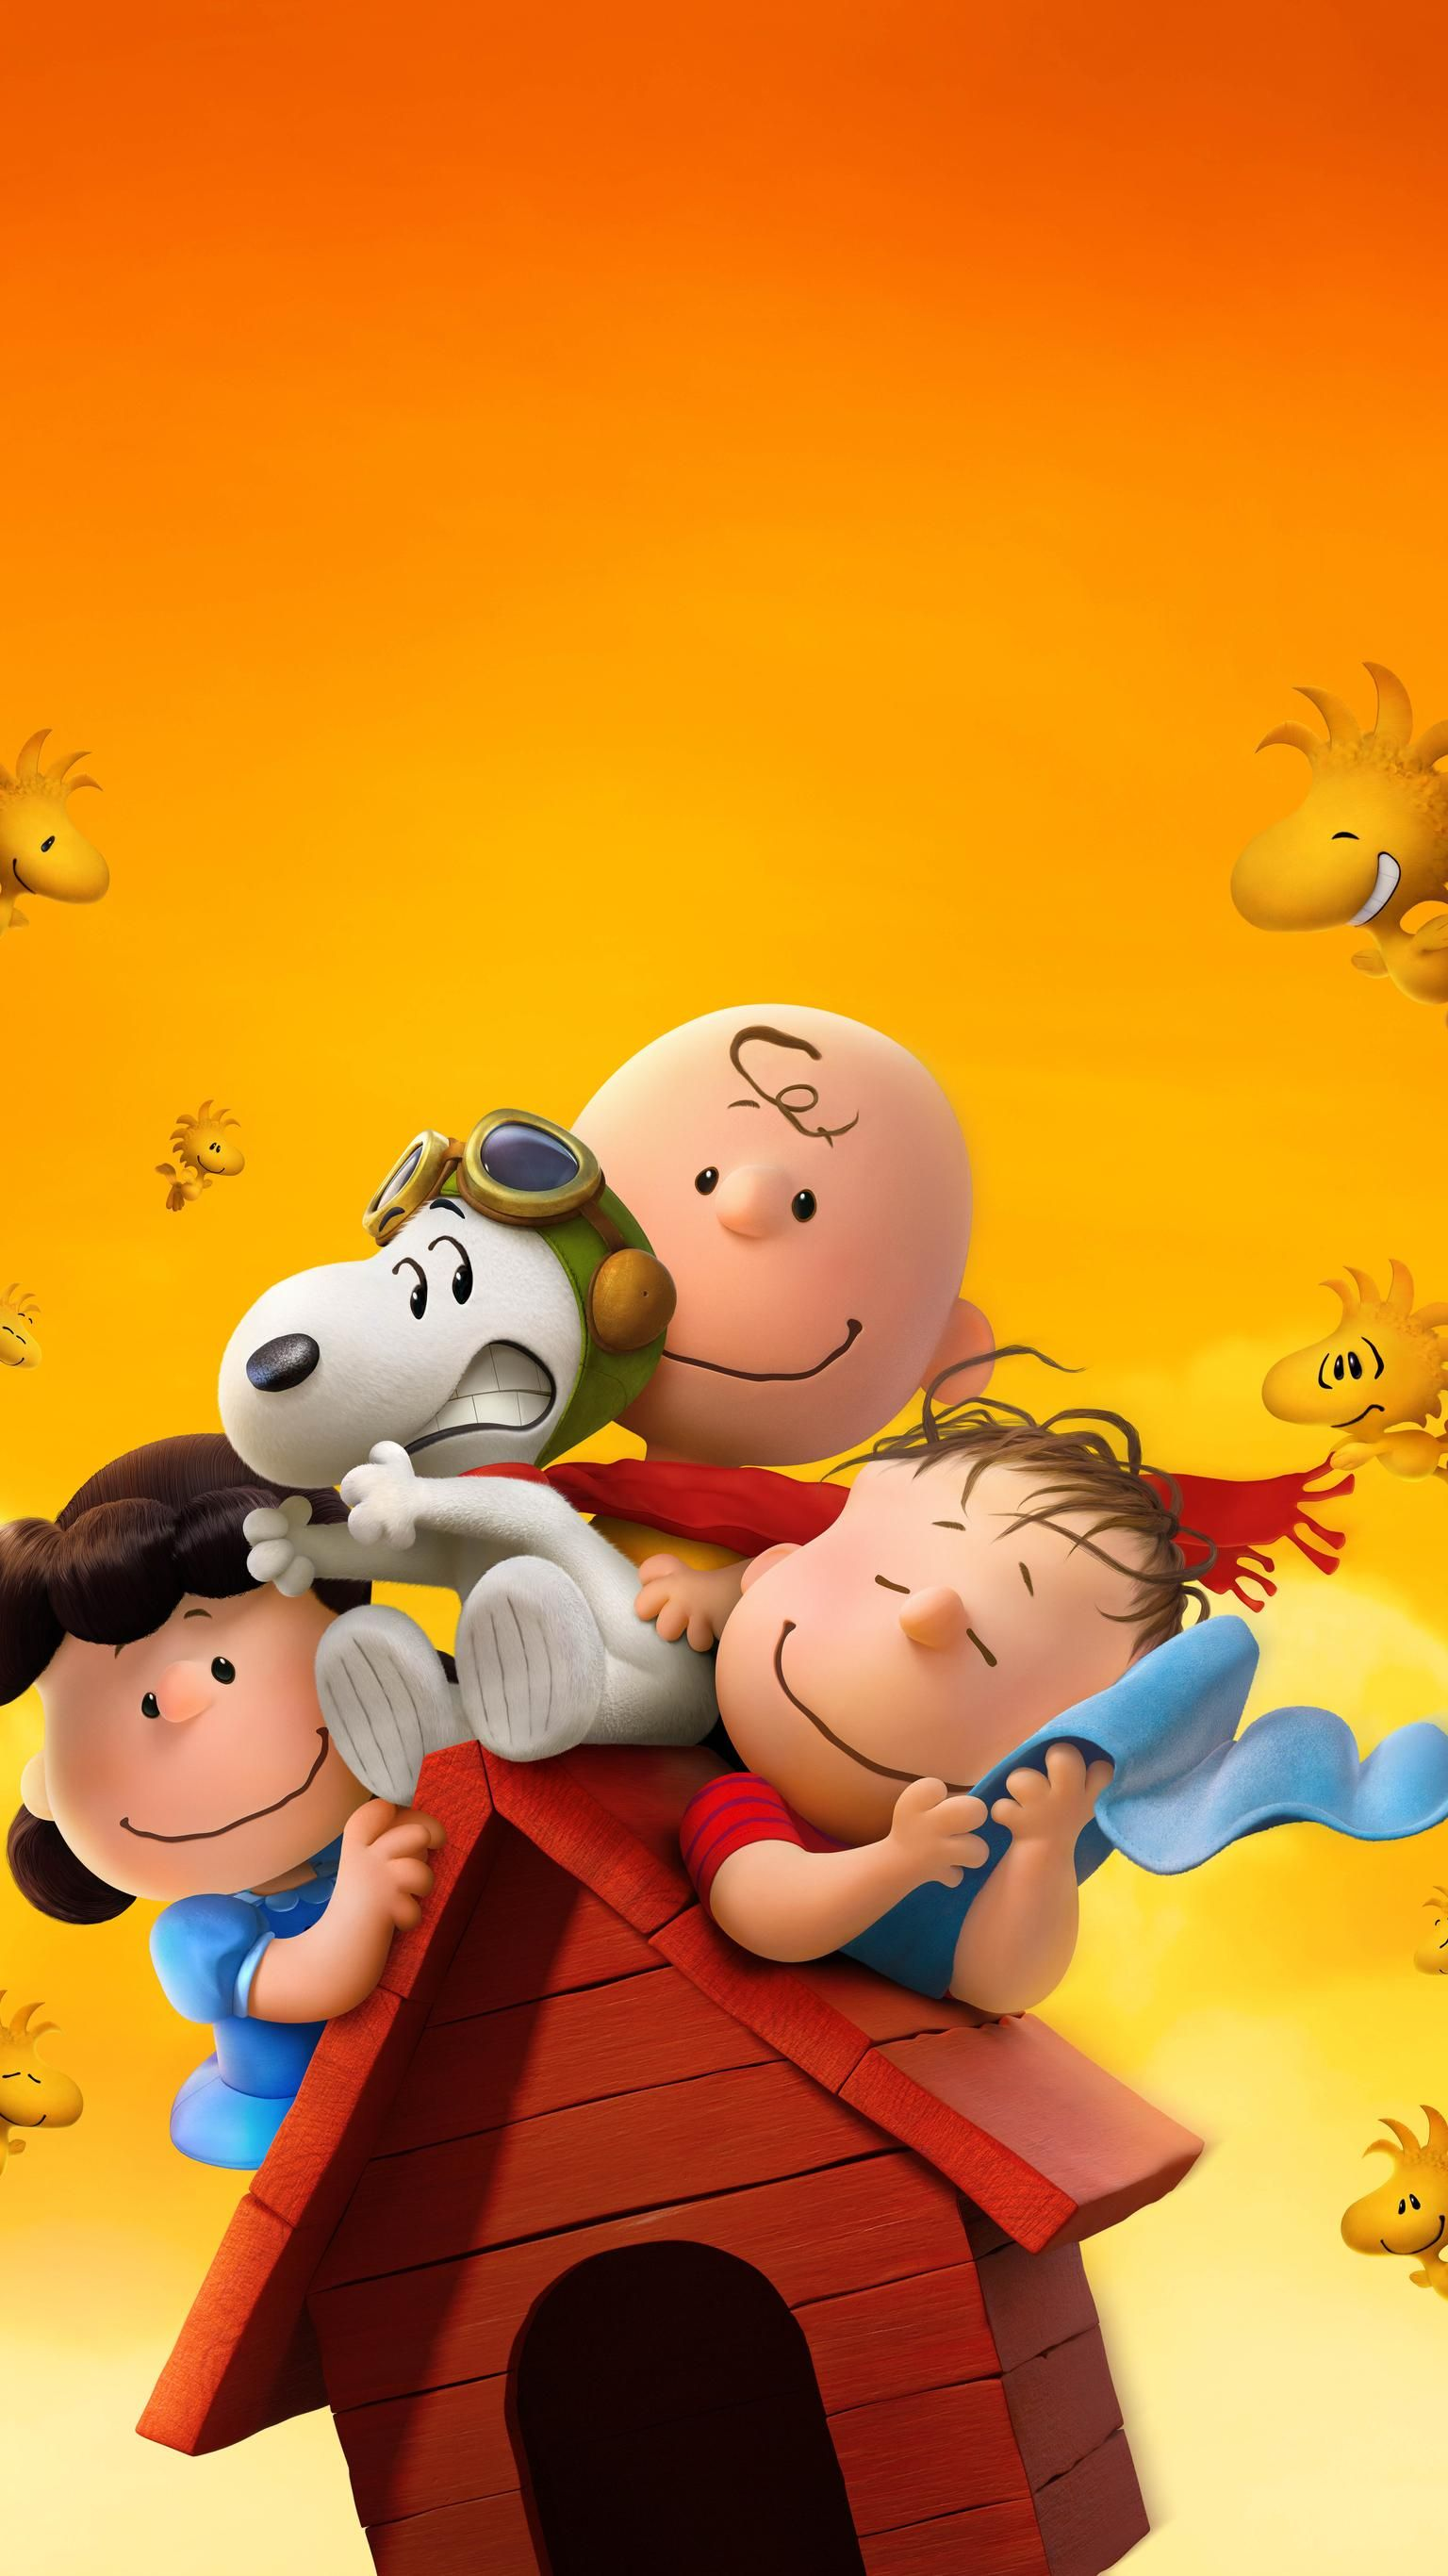 The Peanuts Movie (2015) Phone Wallpaper in 2020 Snoopy